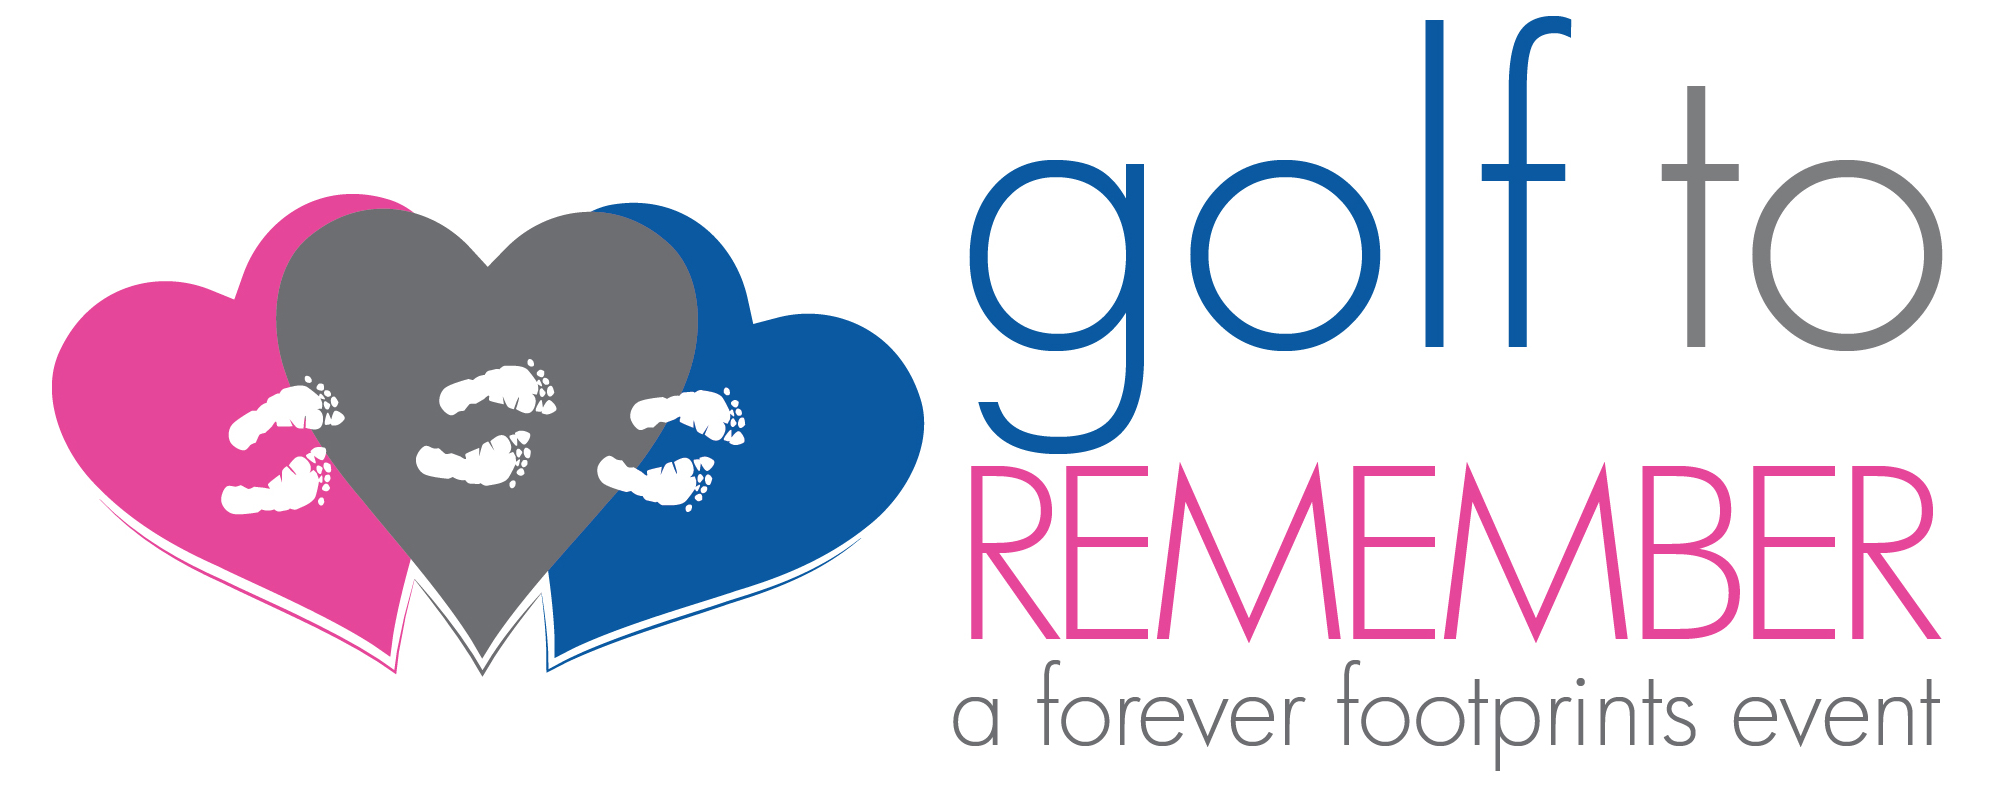 Forever Footprints - Golf to Remember